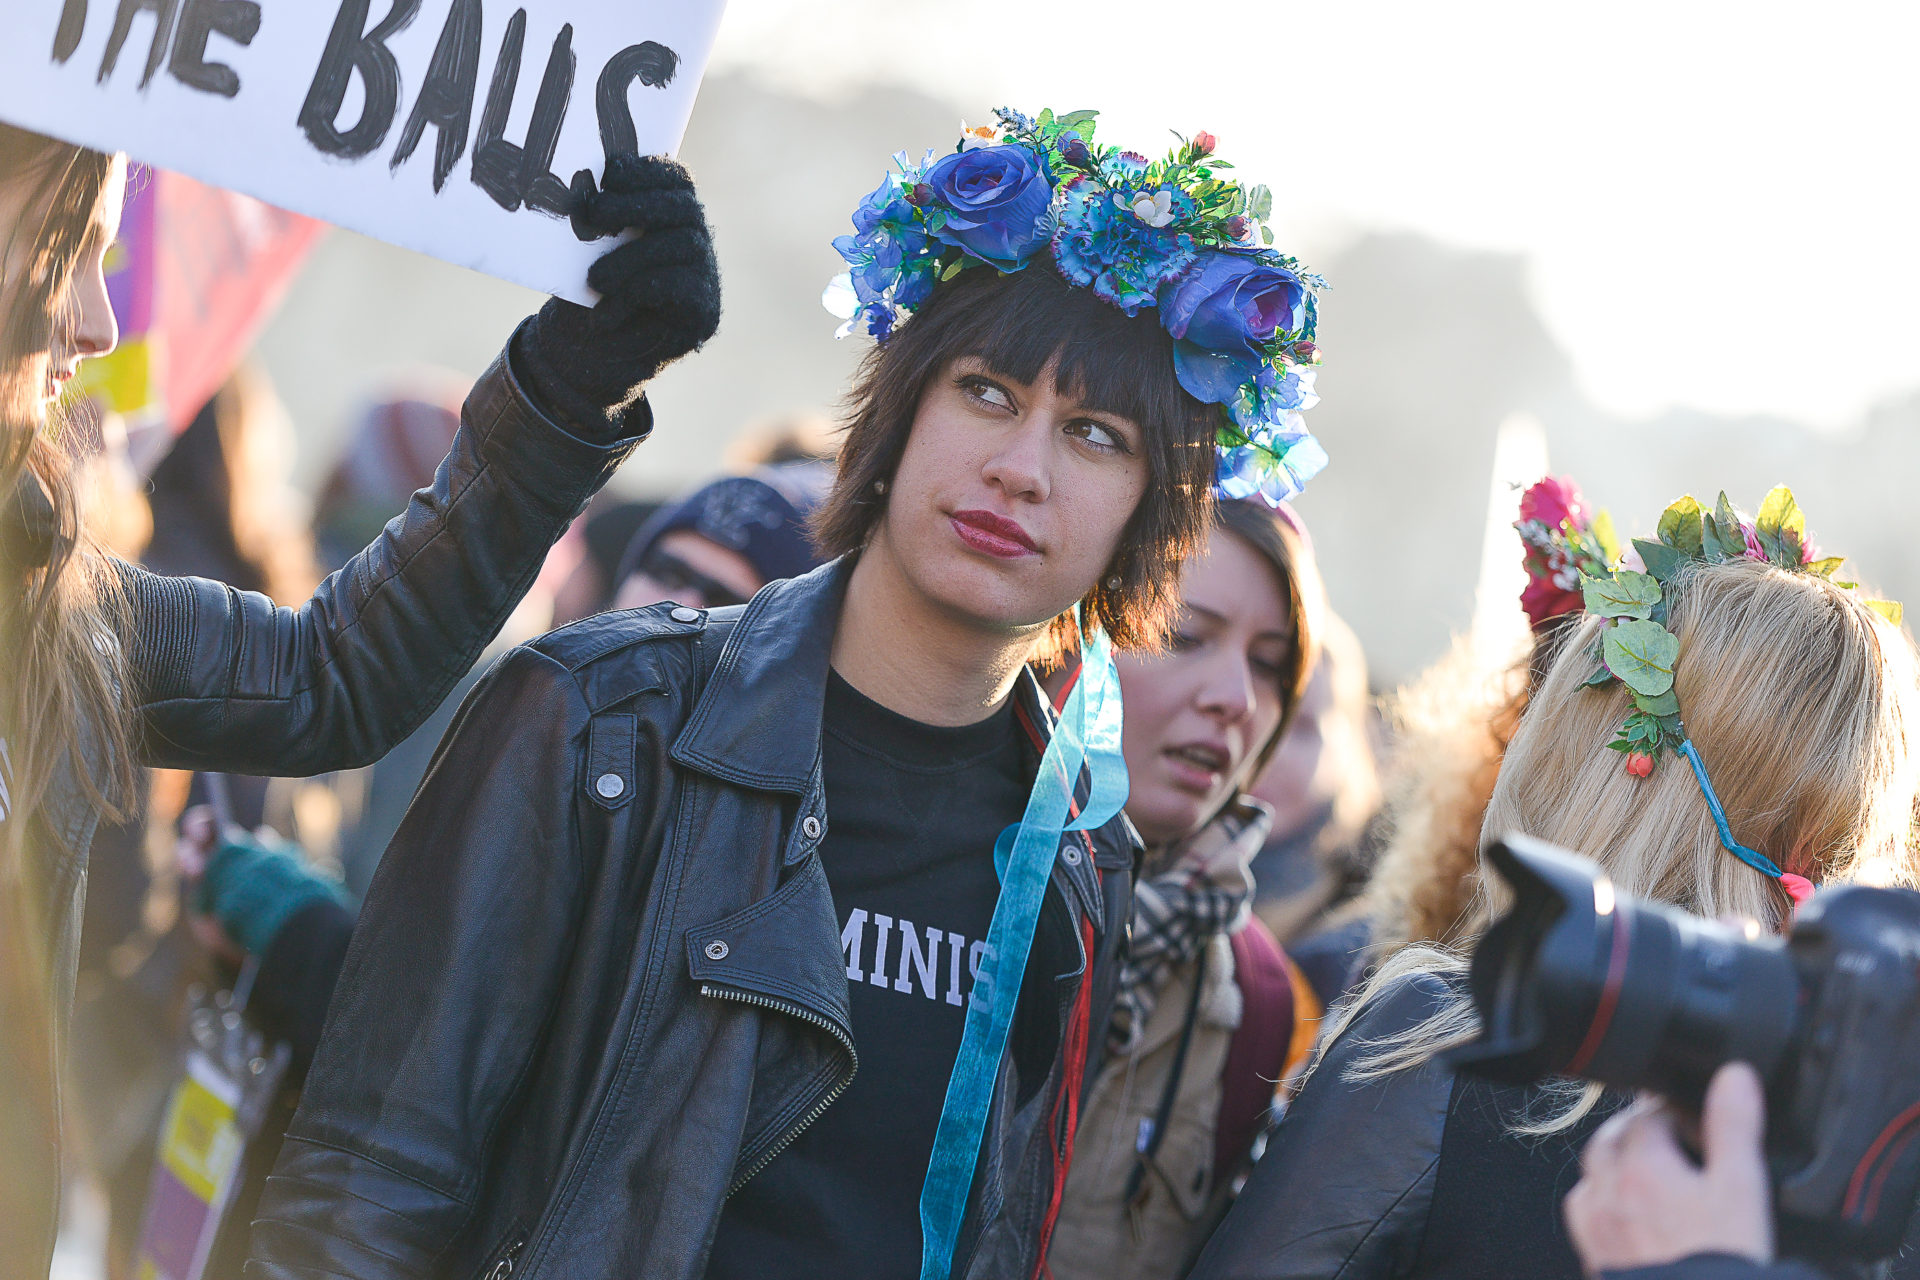 photo-femen-march-women-2017-paris